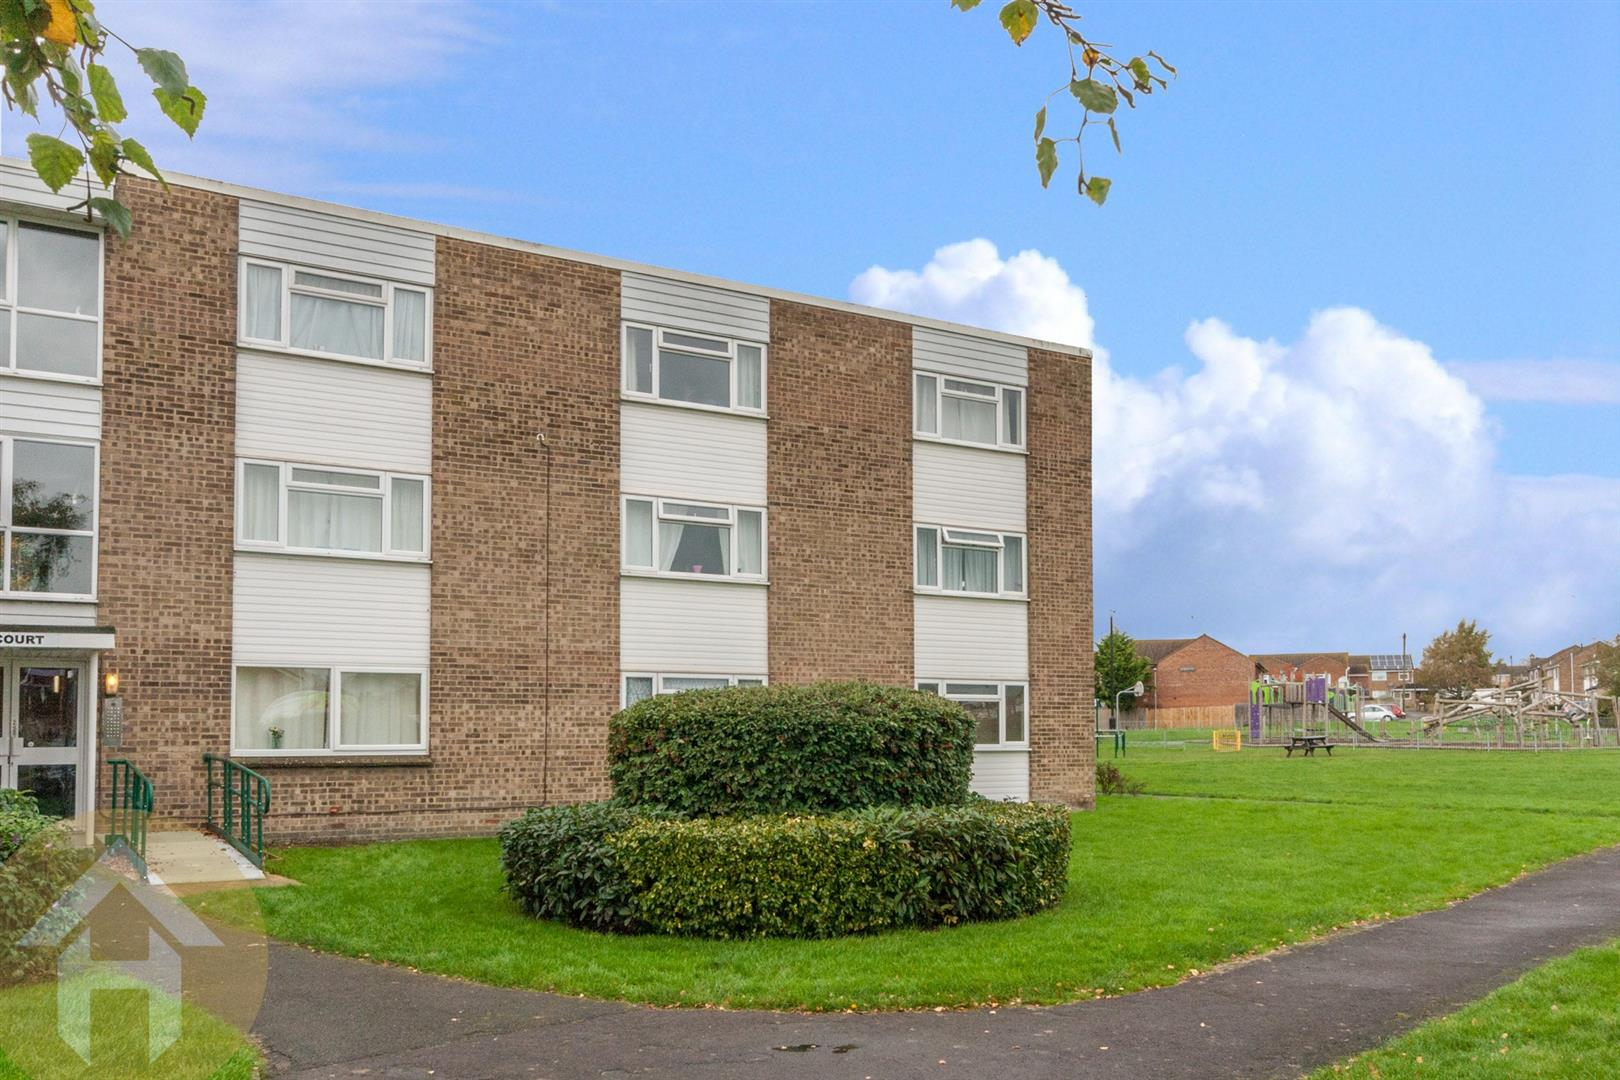 1 Bedroom Studio Flat for sale in Marlborough Court, Royal Wootton Bassett, Swindon